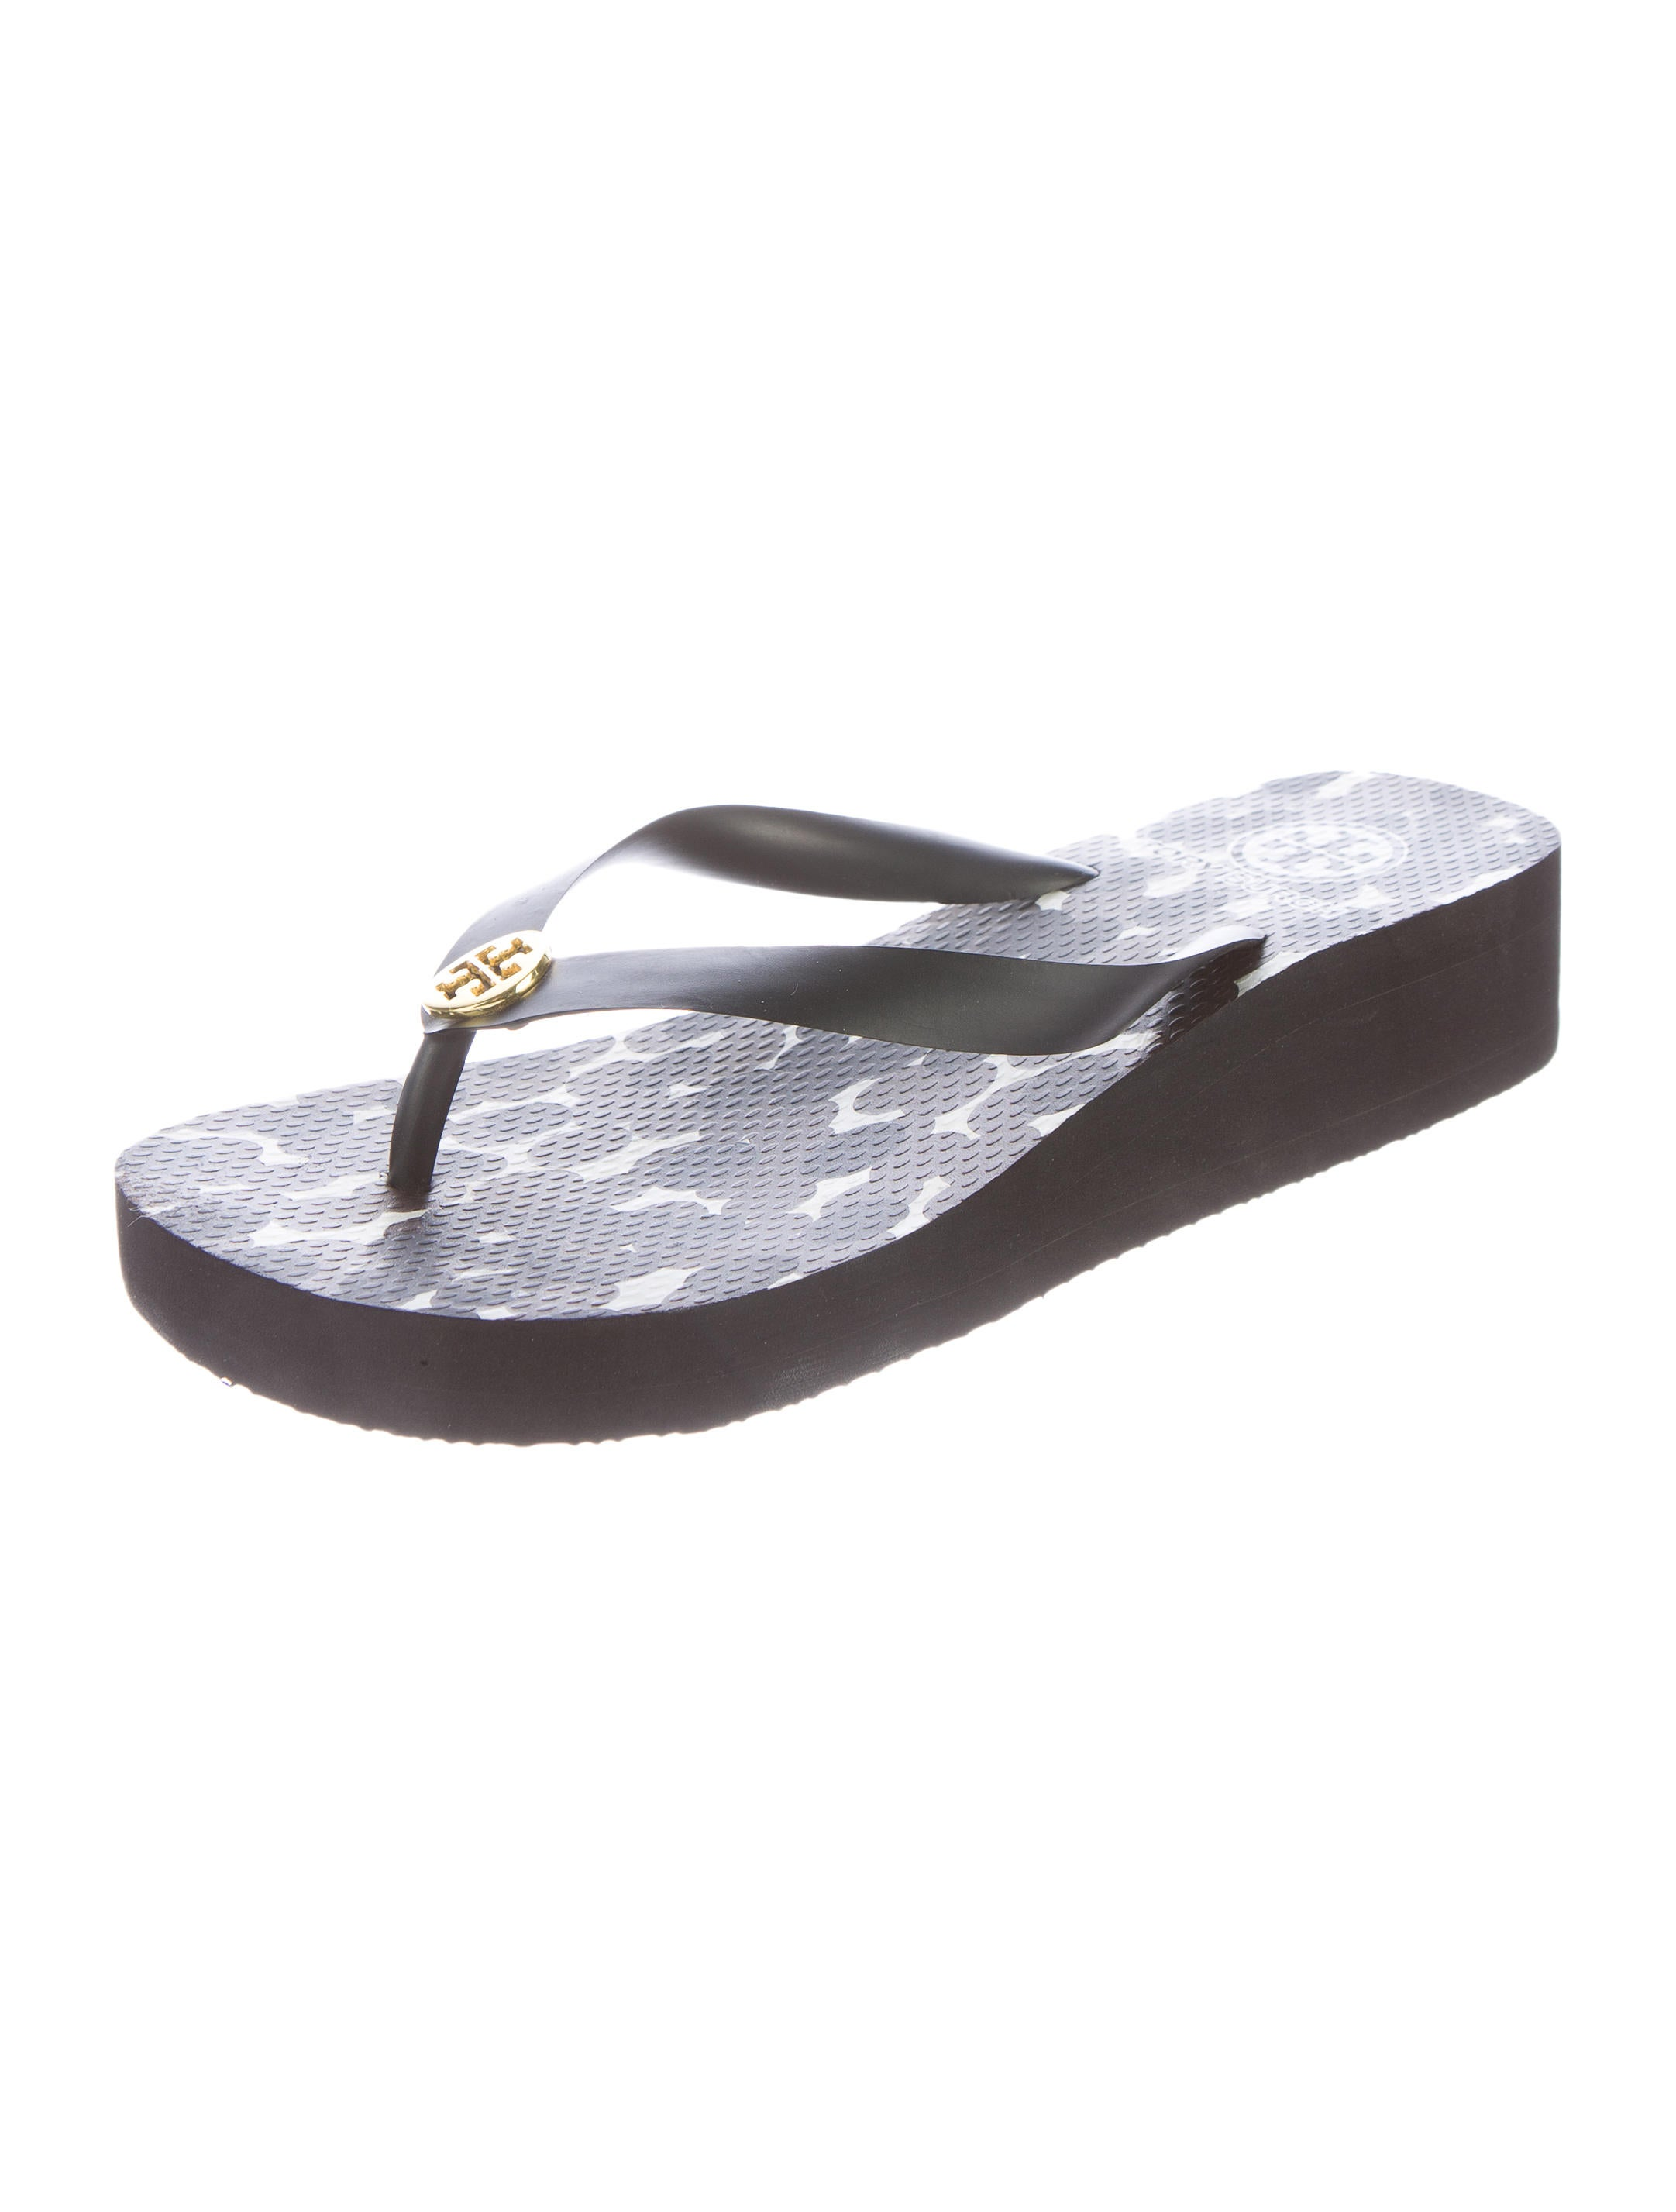 burch rubber wedge sandals shoes wto76572 the